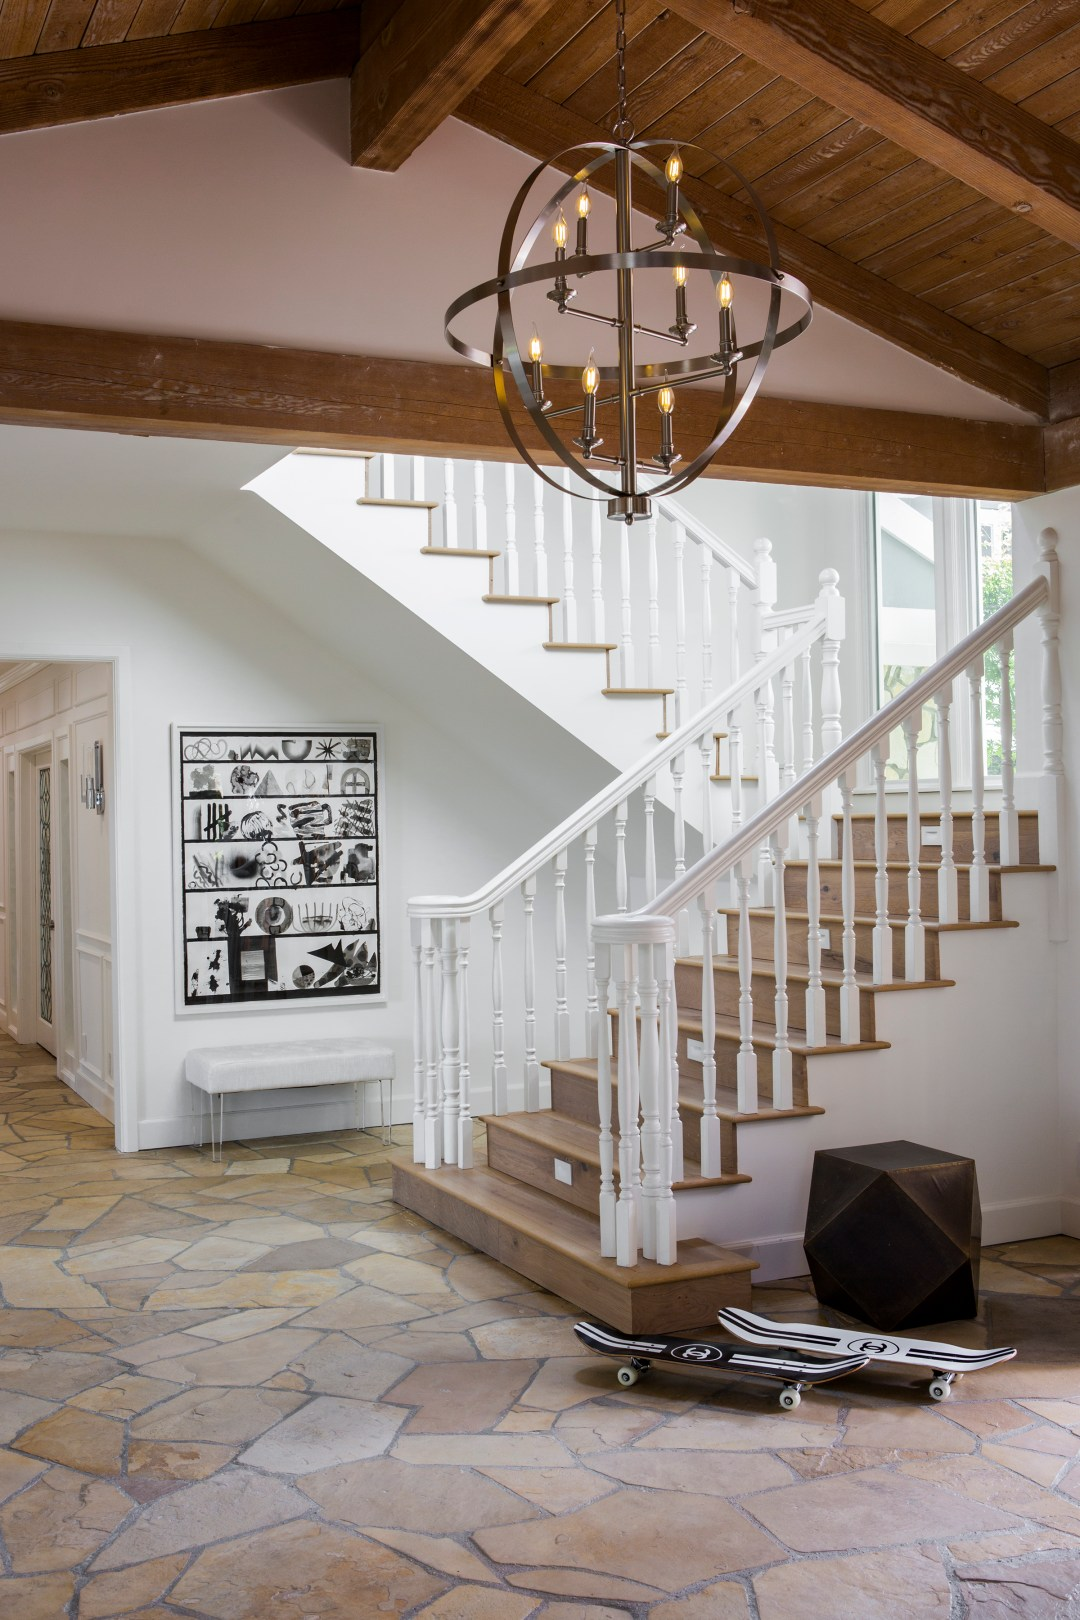 The entryway chandeliers are also from Lamps Plus: The Hudson Valley manufactured Bari chandelier in polished nickel was the perfect fixture to add some glamour to the California Ranch home.